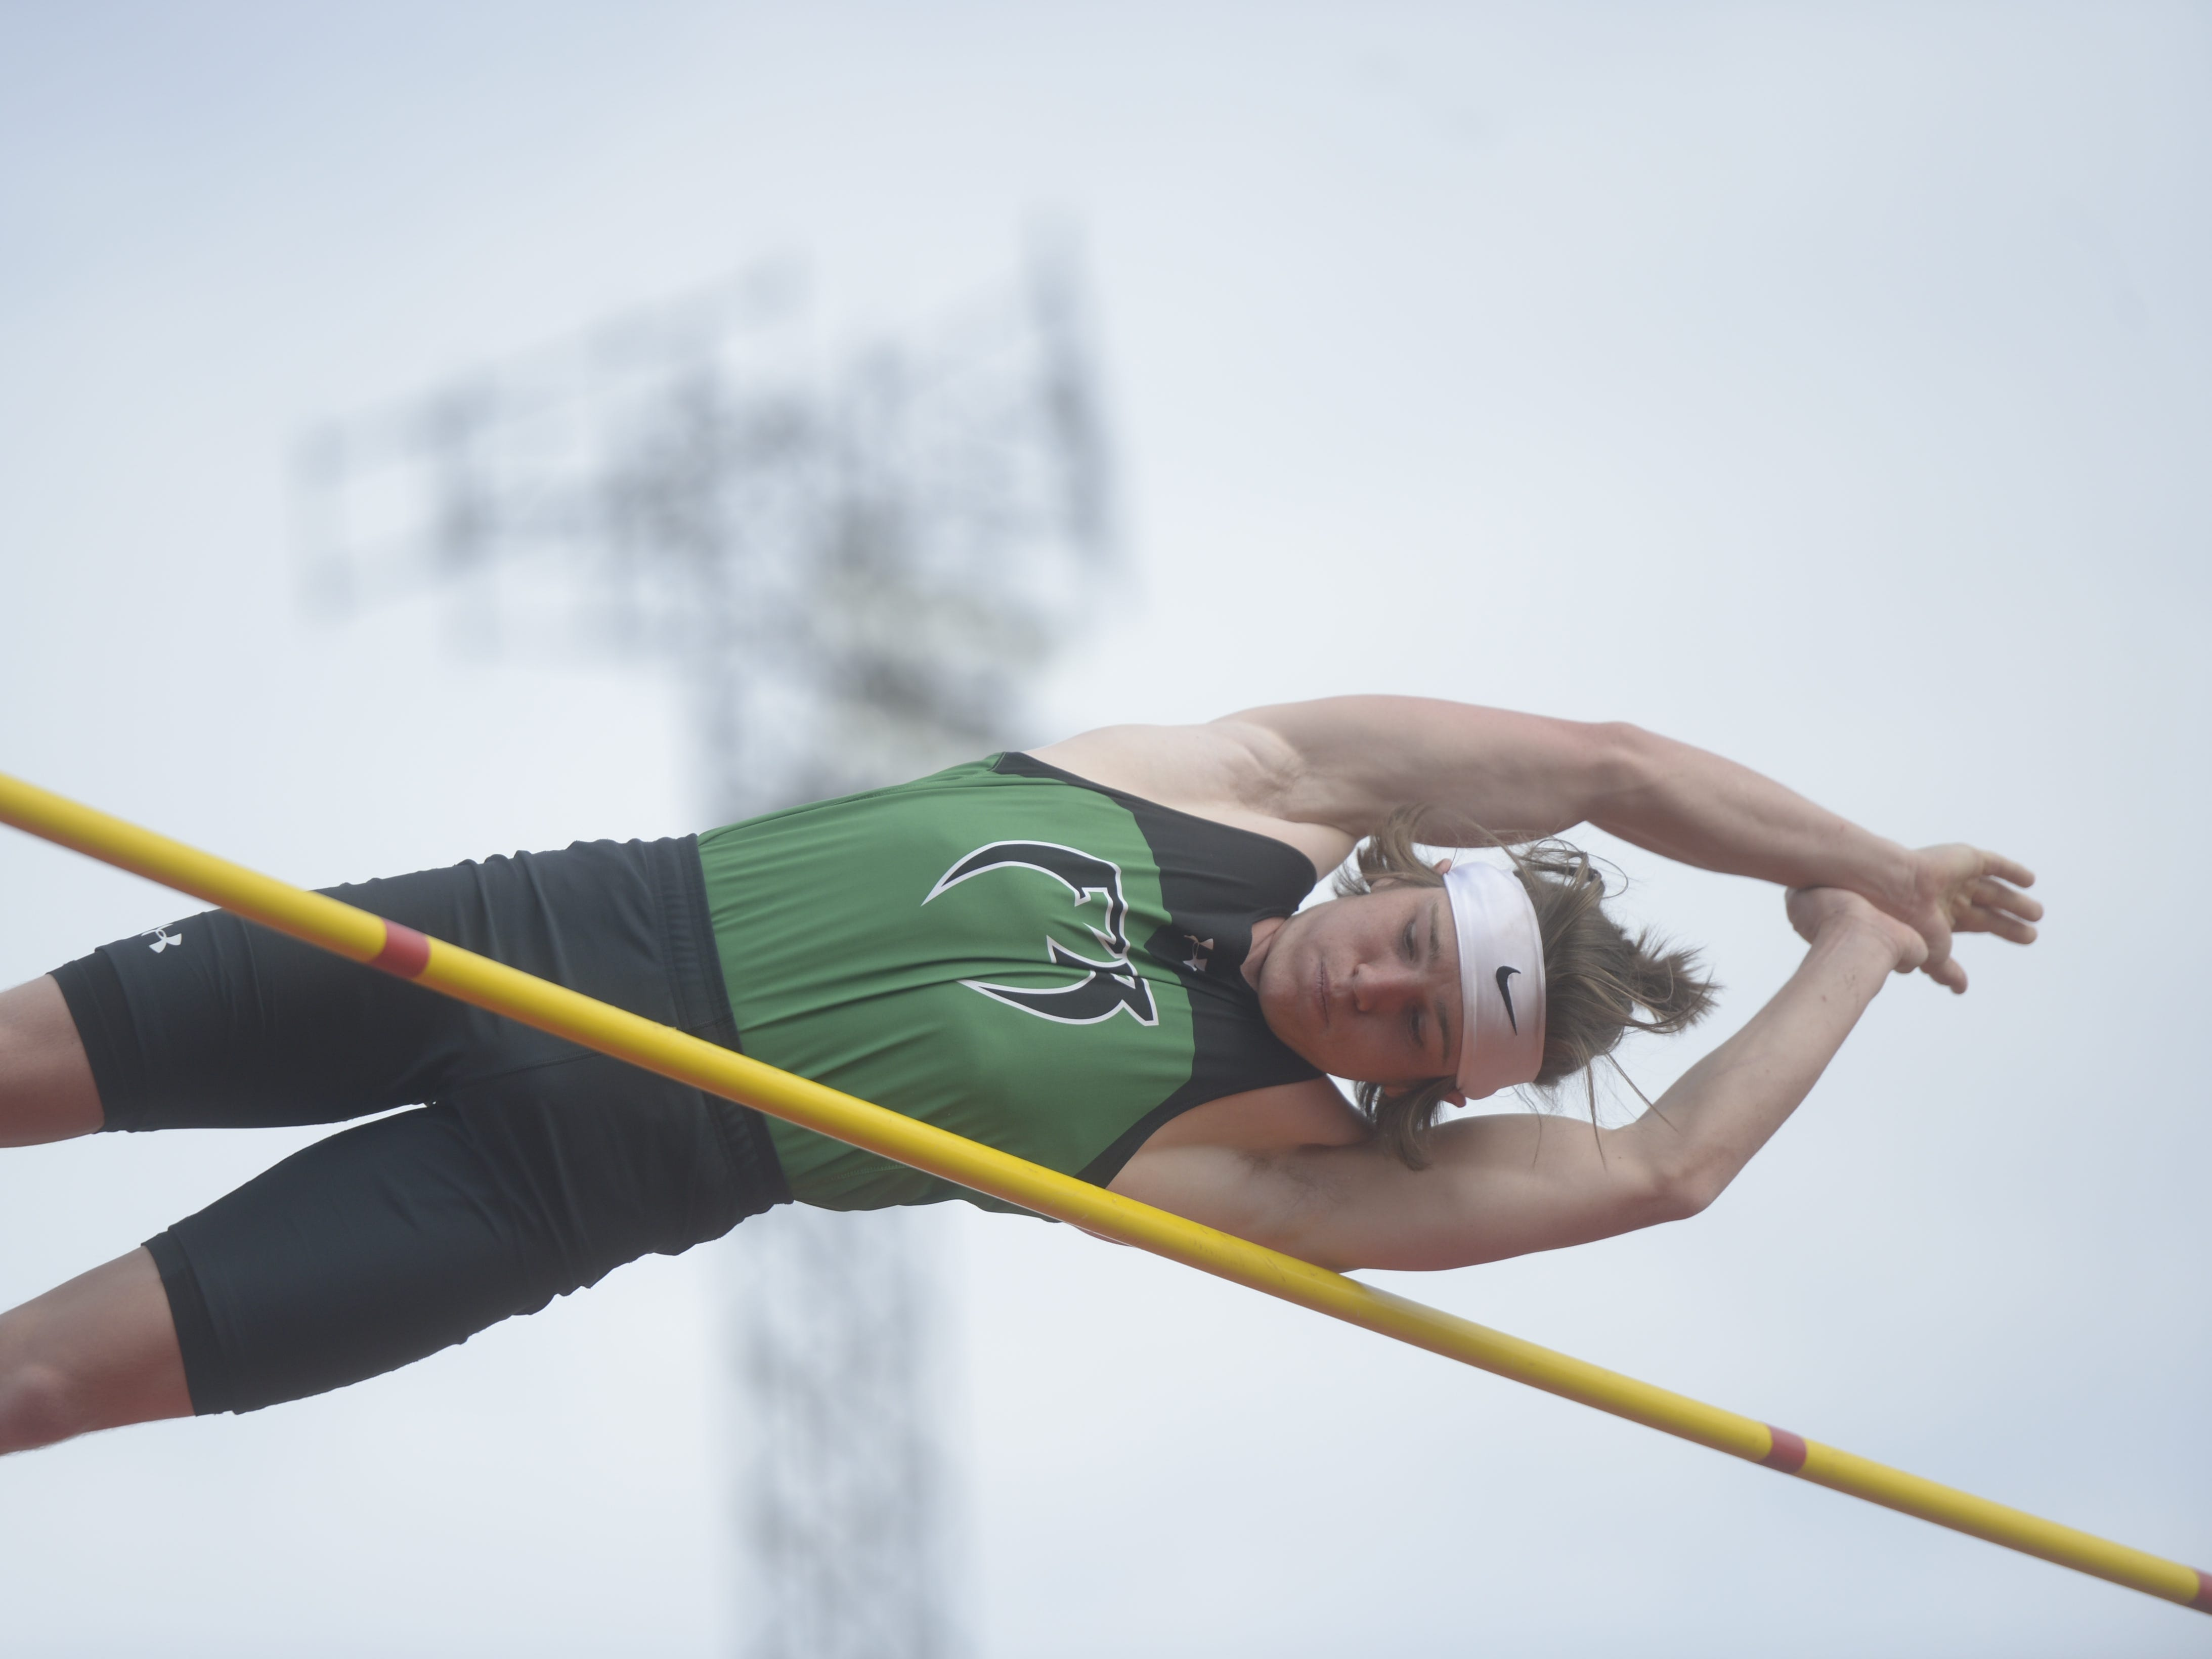 Fossil Ridge High School's Adam Curran clears the bar in the pole vault competition at the Fort Collins city meet at French Field on Tuesday, April 9, 2019.